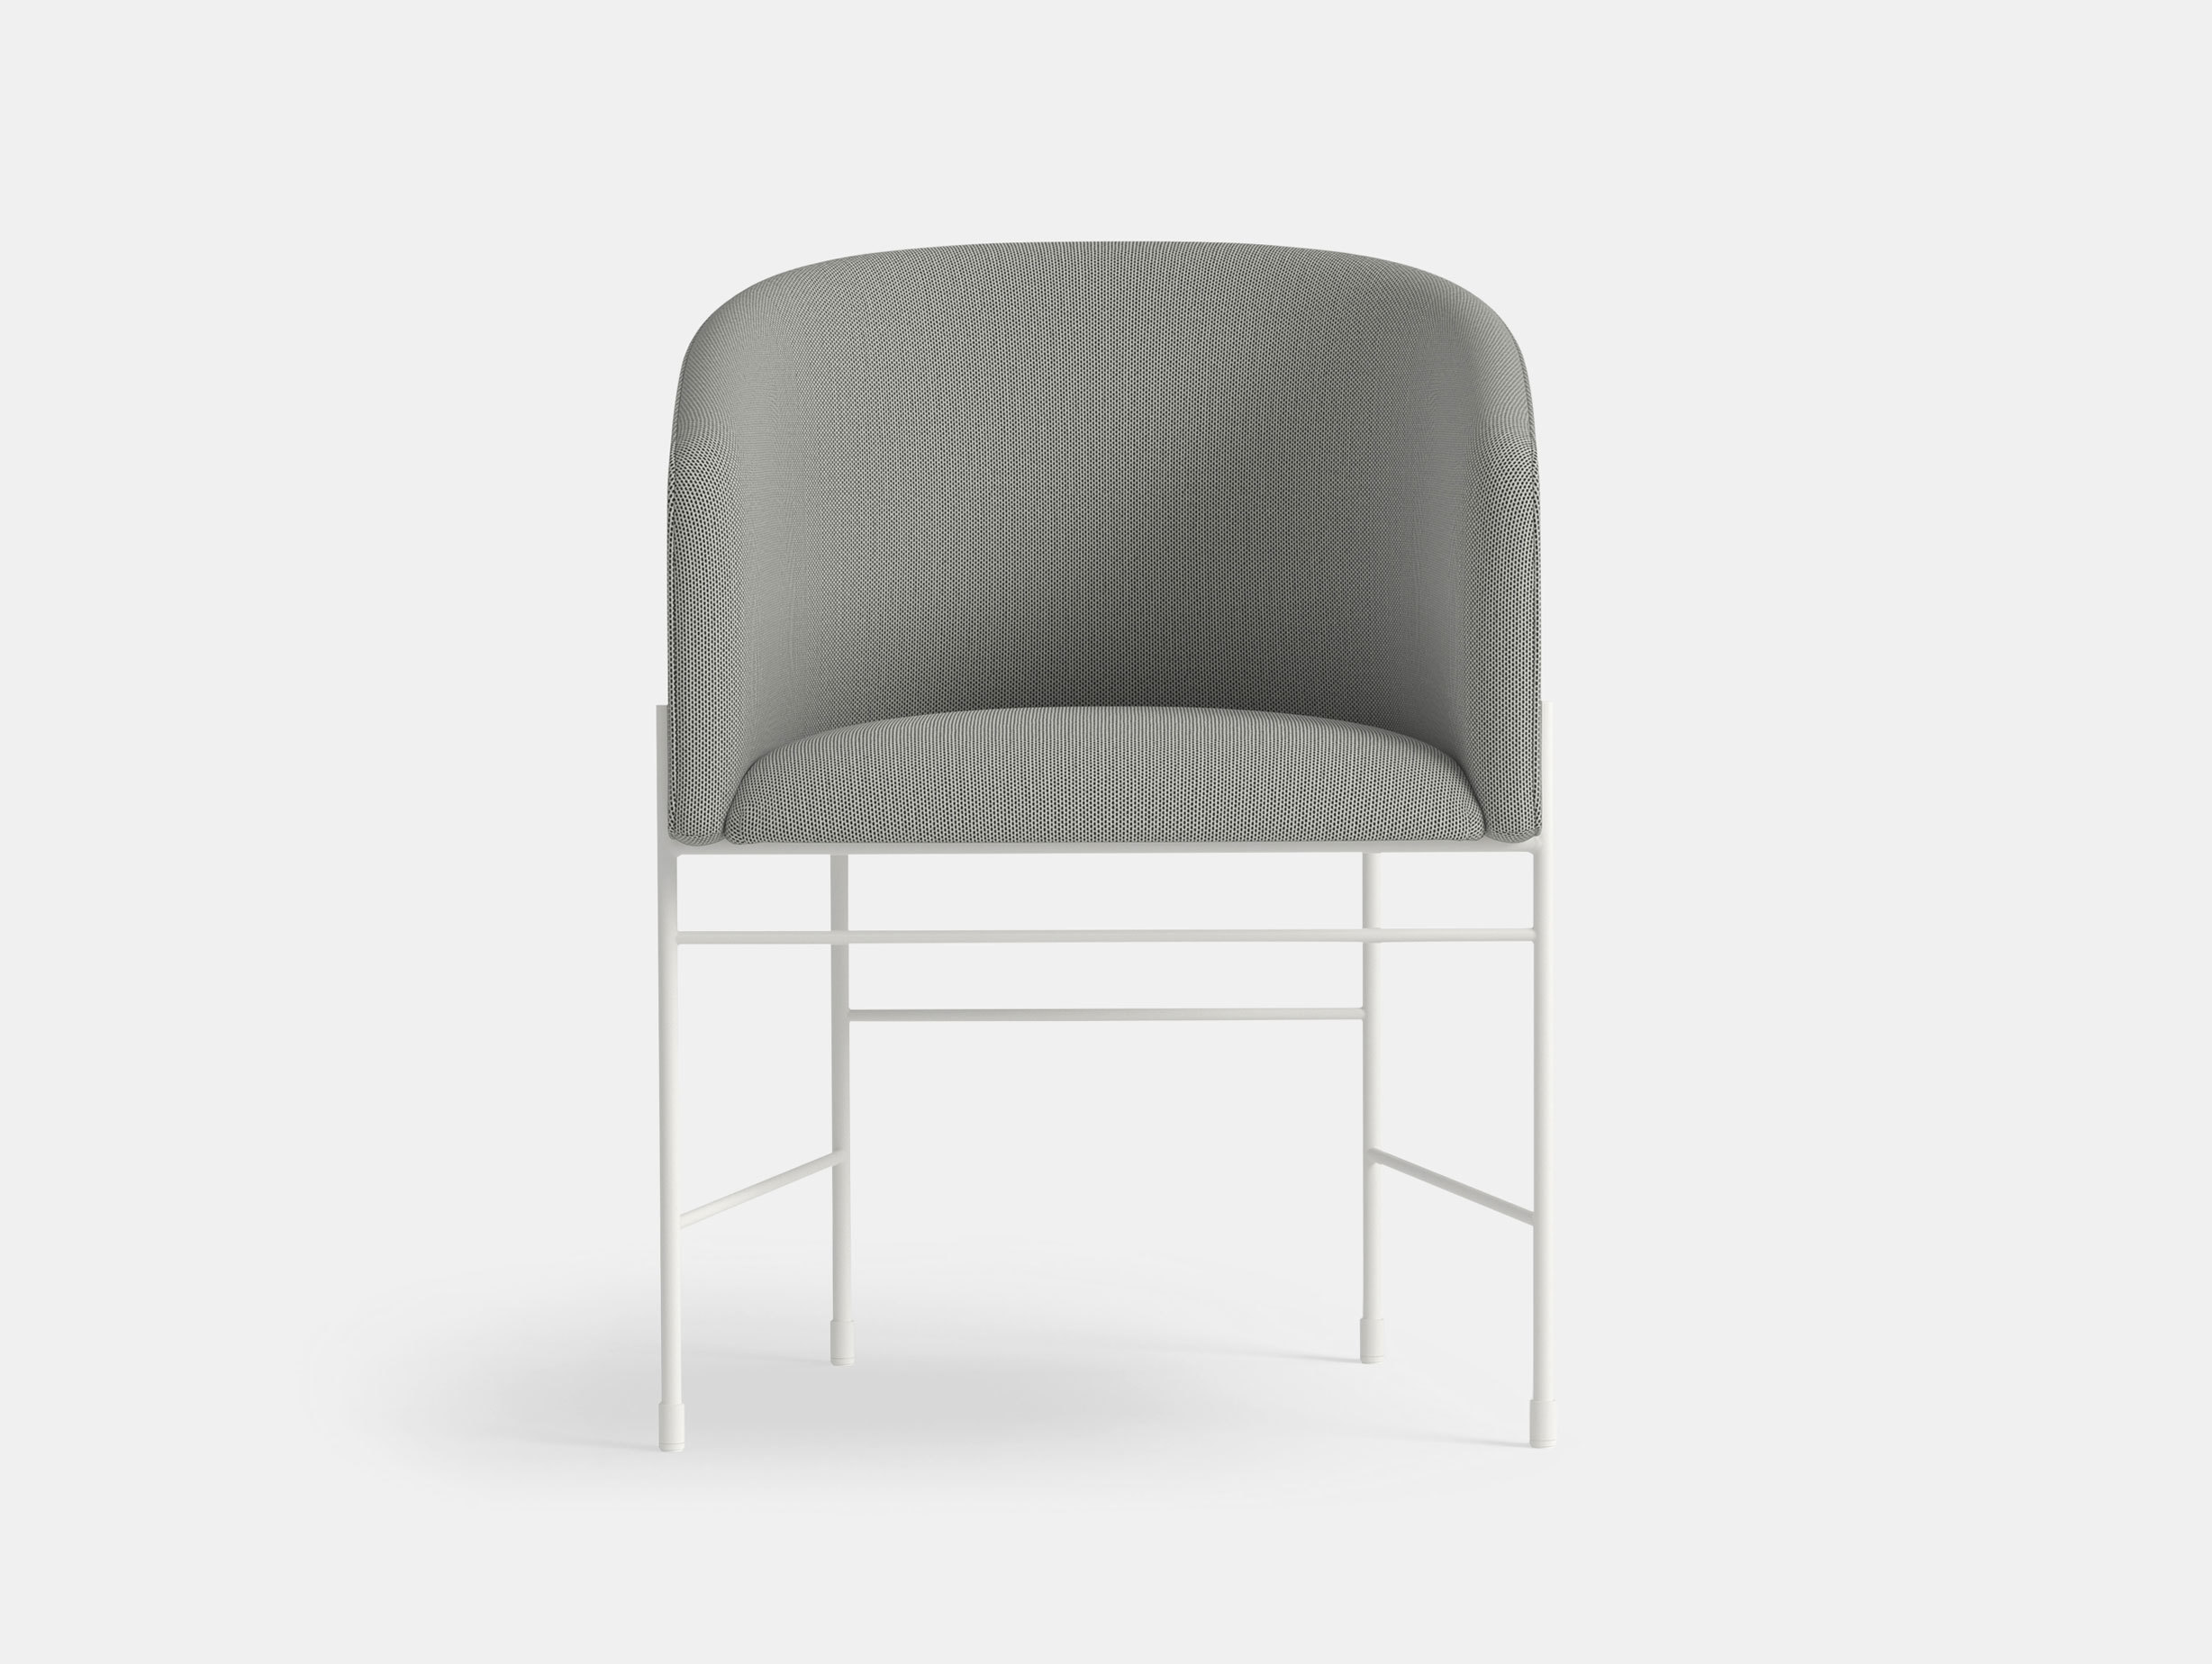 New Works Covent Chair Kvadrat Basel 129 Rene Hougaard